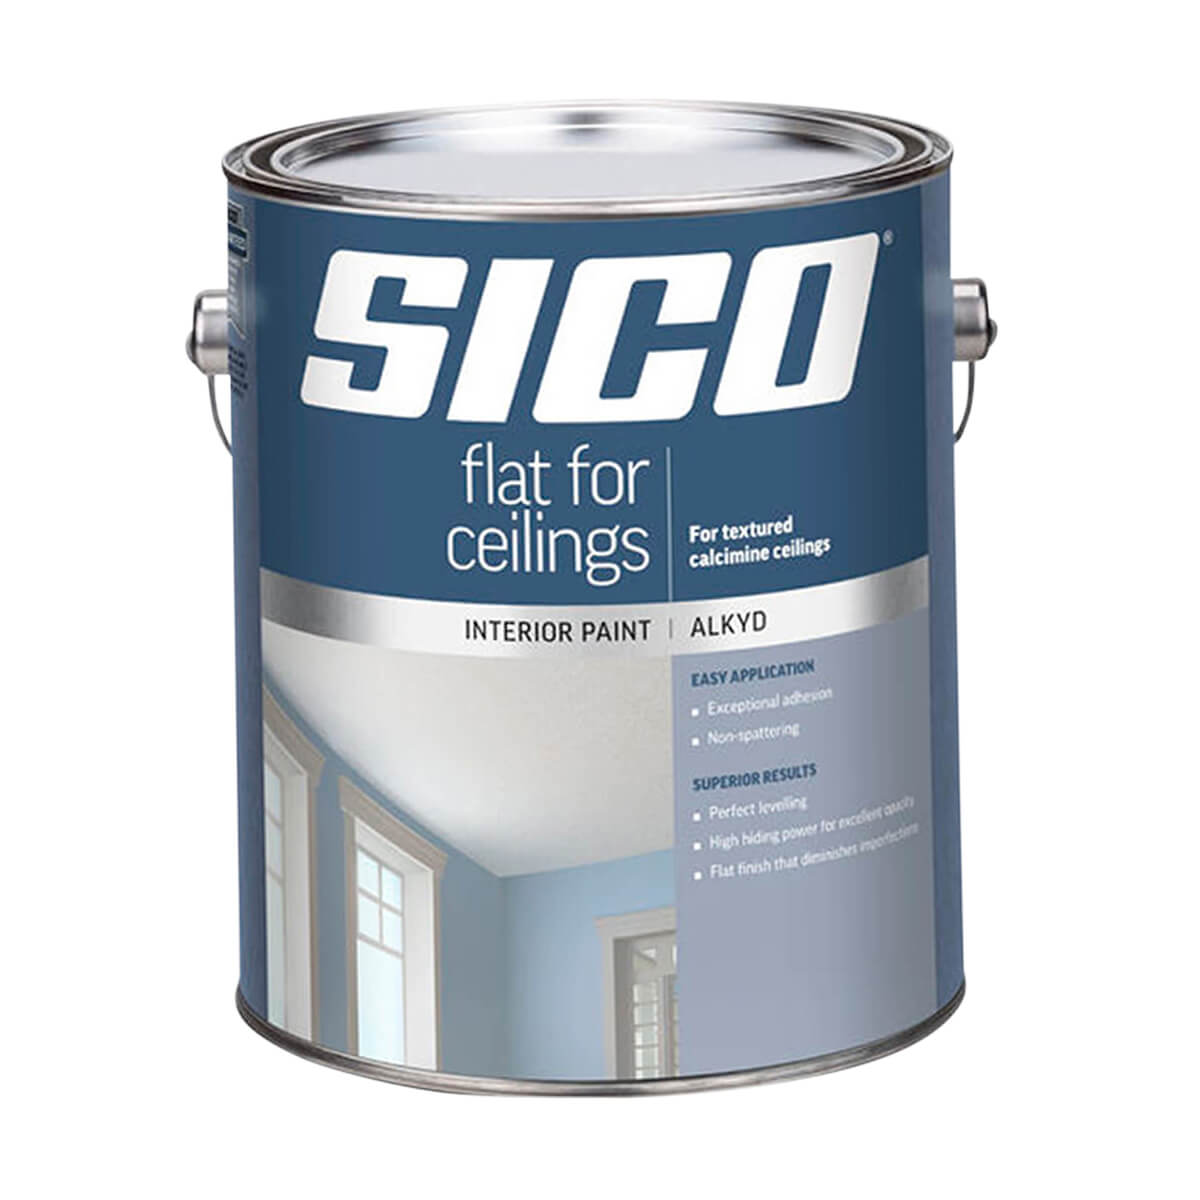 Sico Interior - Alkyd - Paint for Ceilings Series 721 - White - 3.78 L